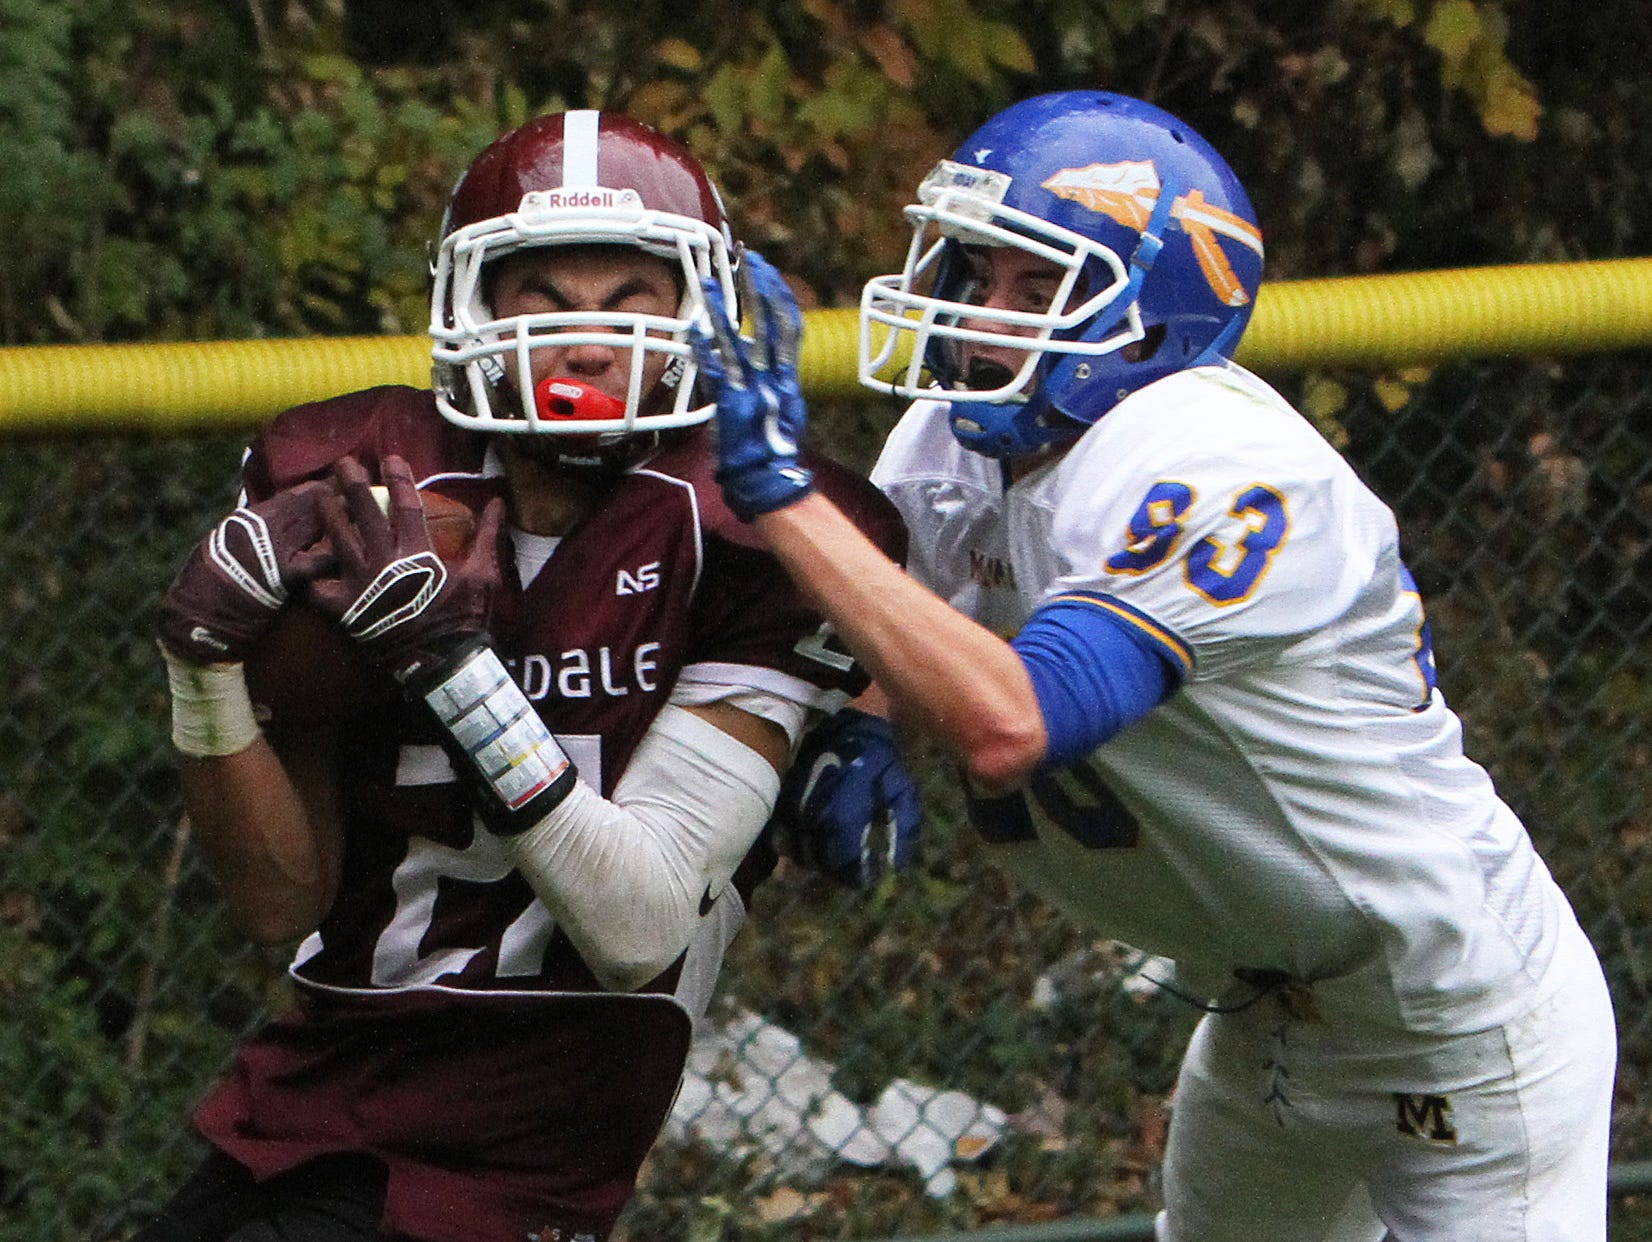 Scarsdale's Sam Squadron (21) catches the game winning touchdown pass in front of Mahopac's Shane Mcdonald (83) during football playoff game at Scarsdale High School Oct. 24, 2015. Scarsdale won the game 33-28.